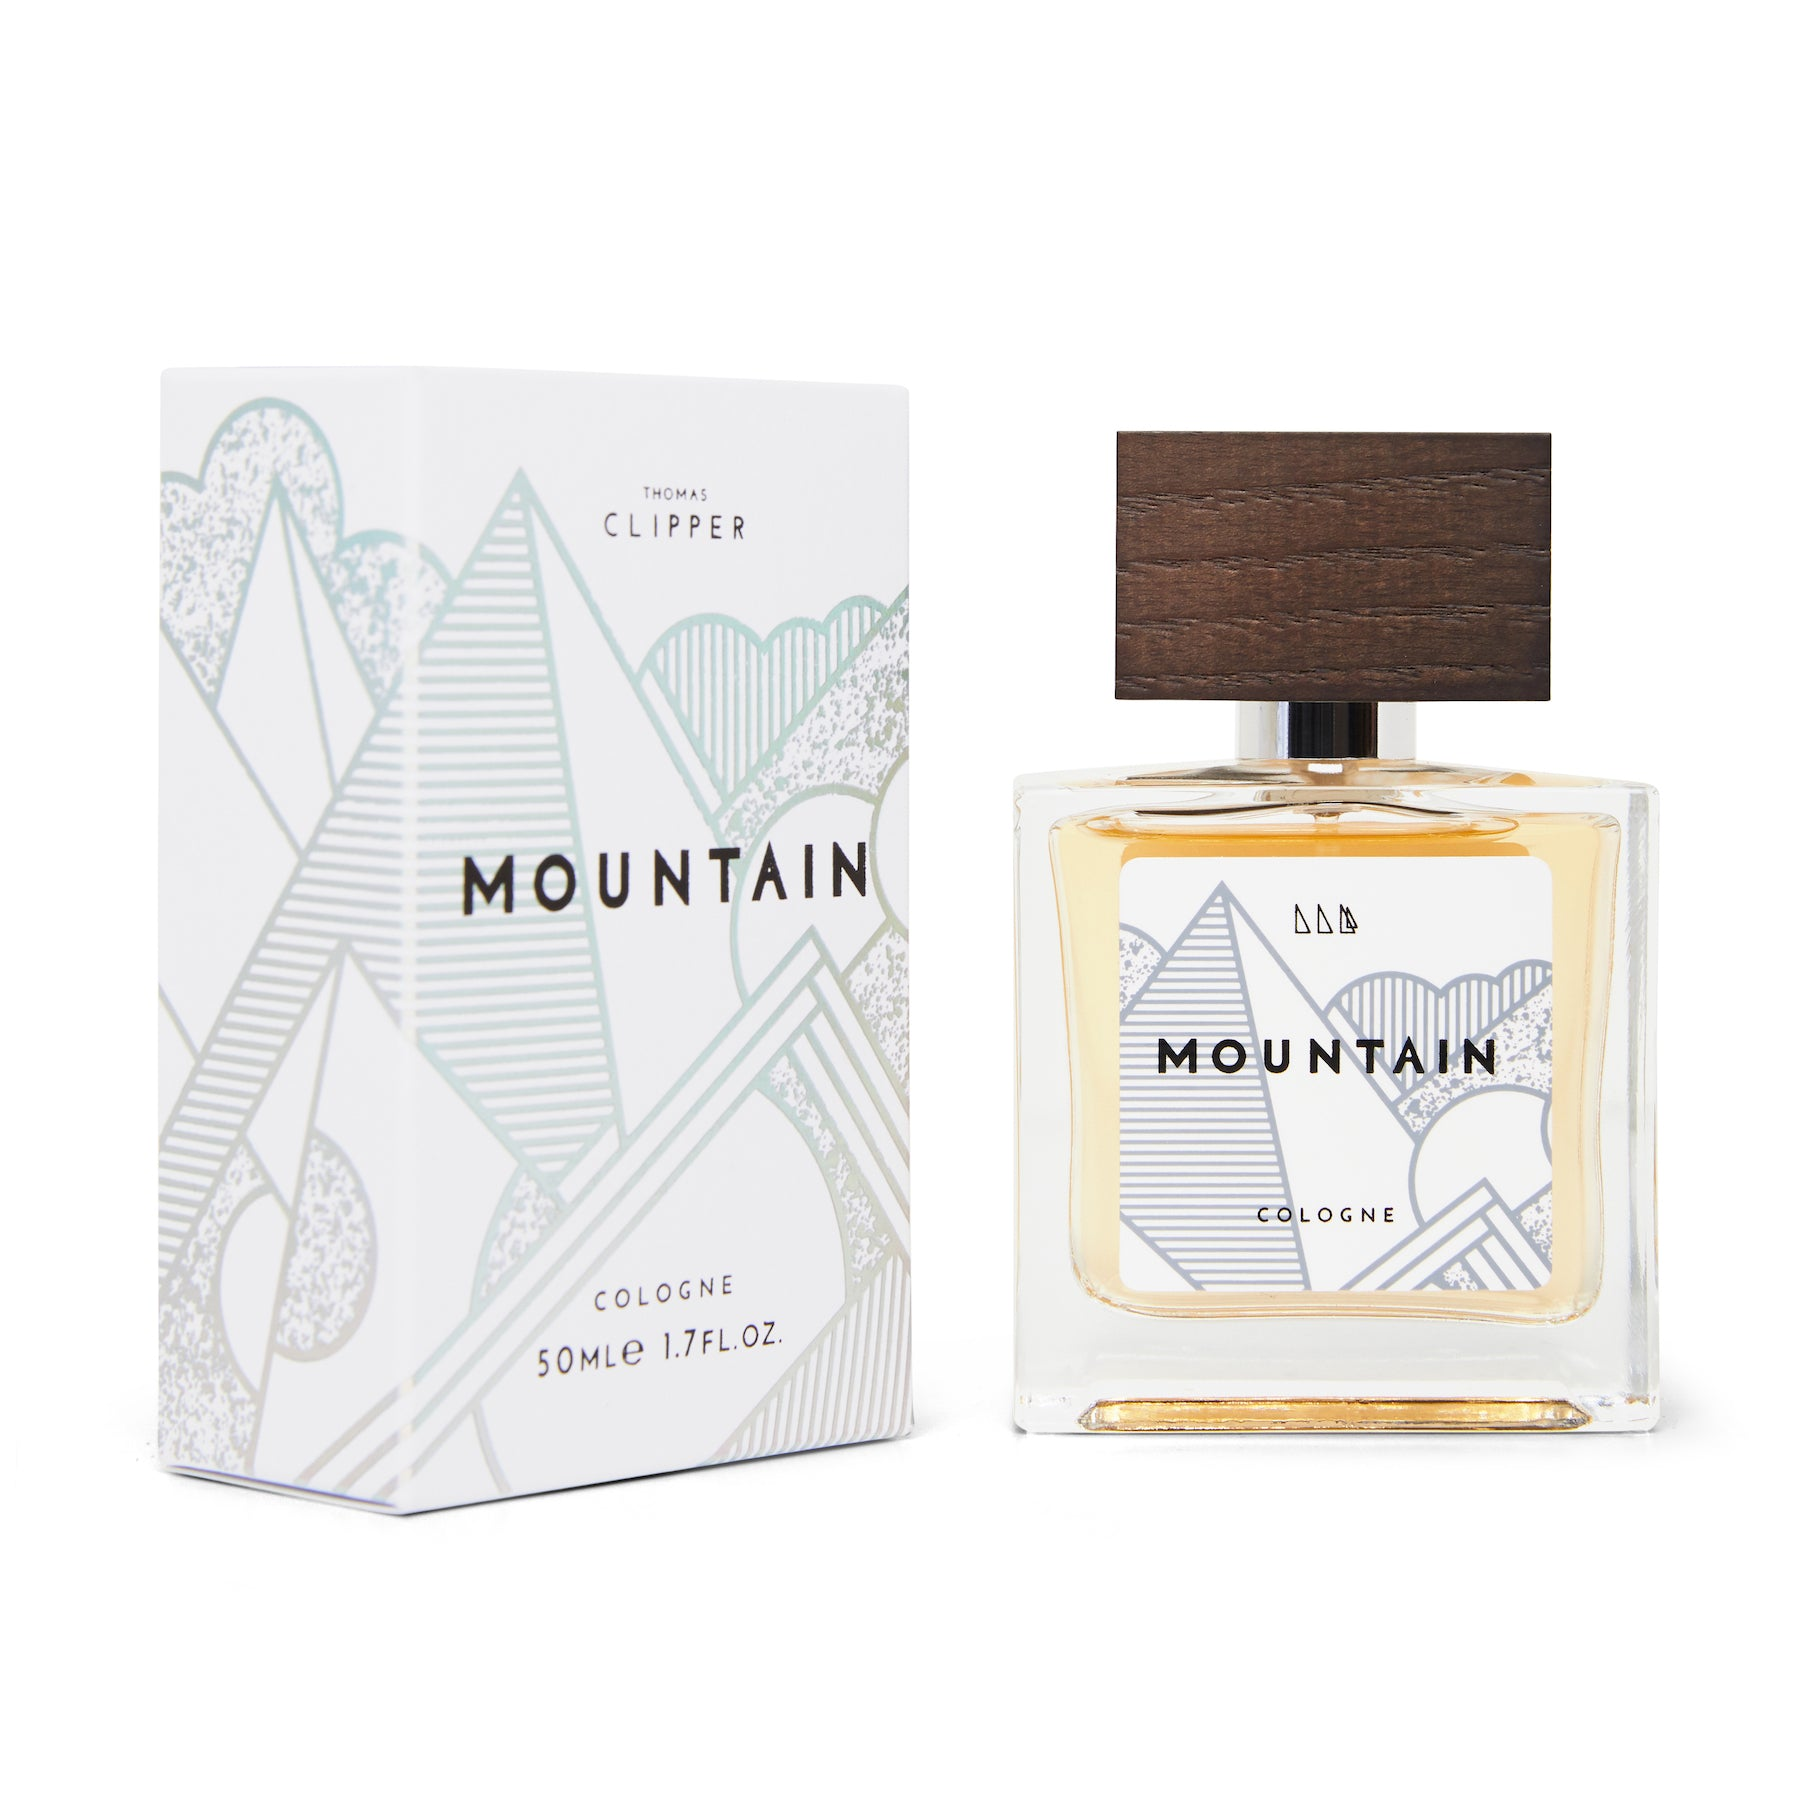 Thomas Clipper Mountain Cologne - 50ml